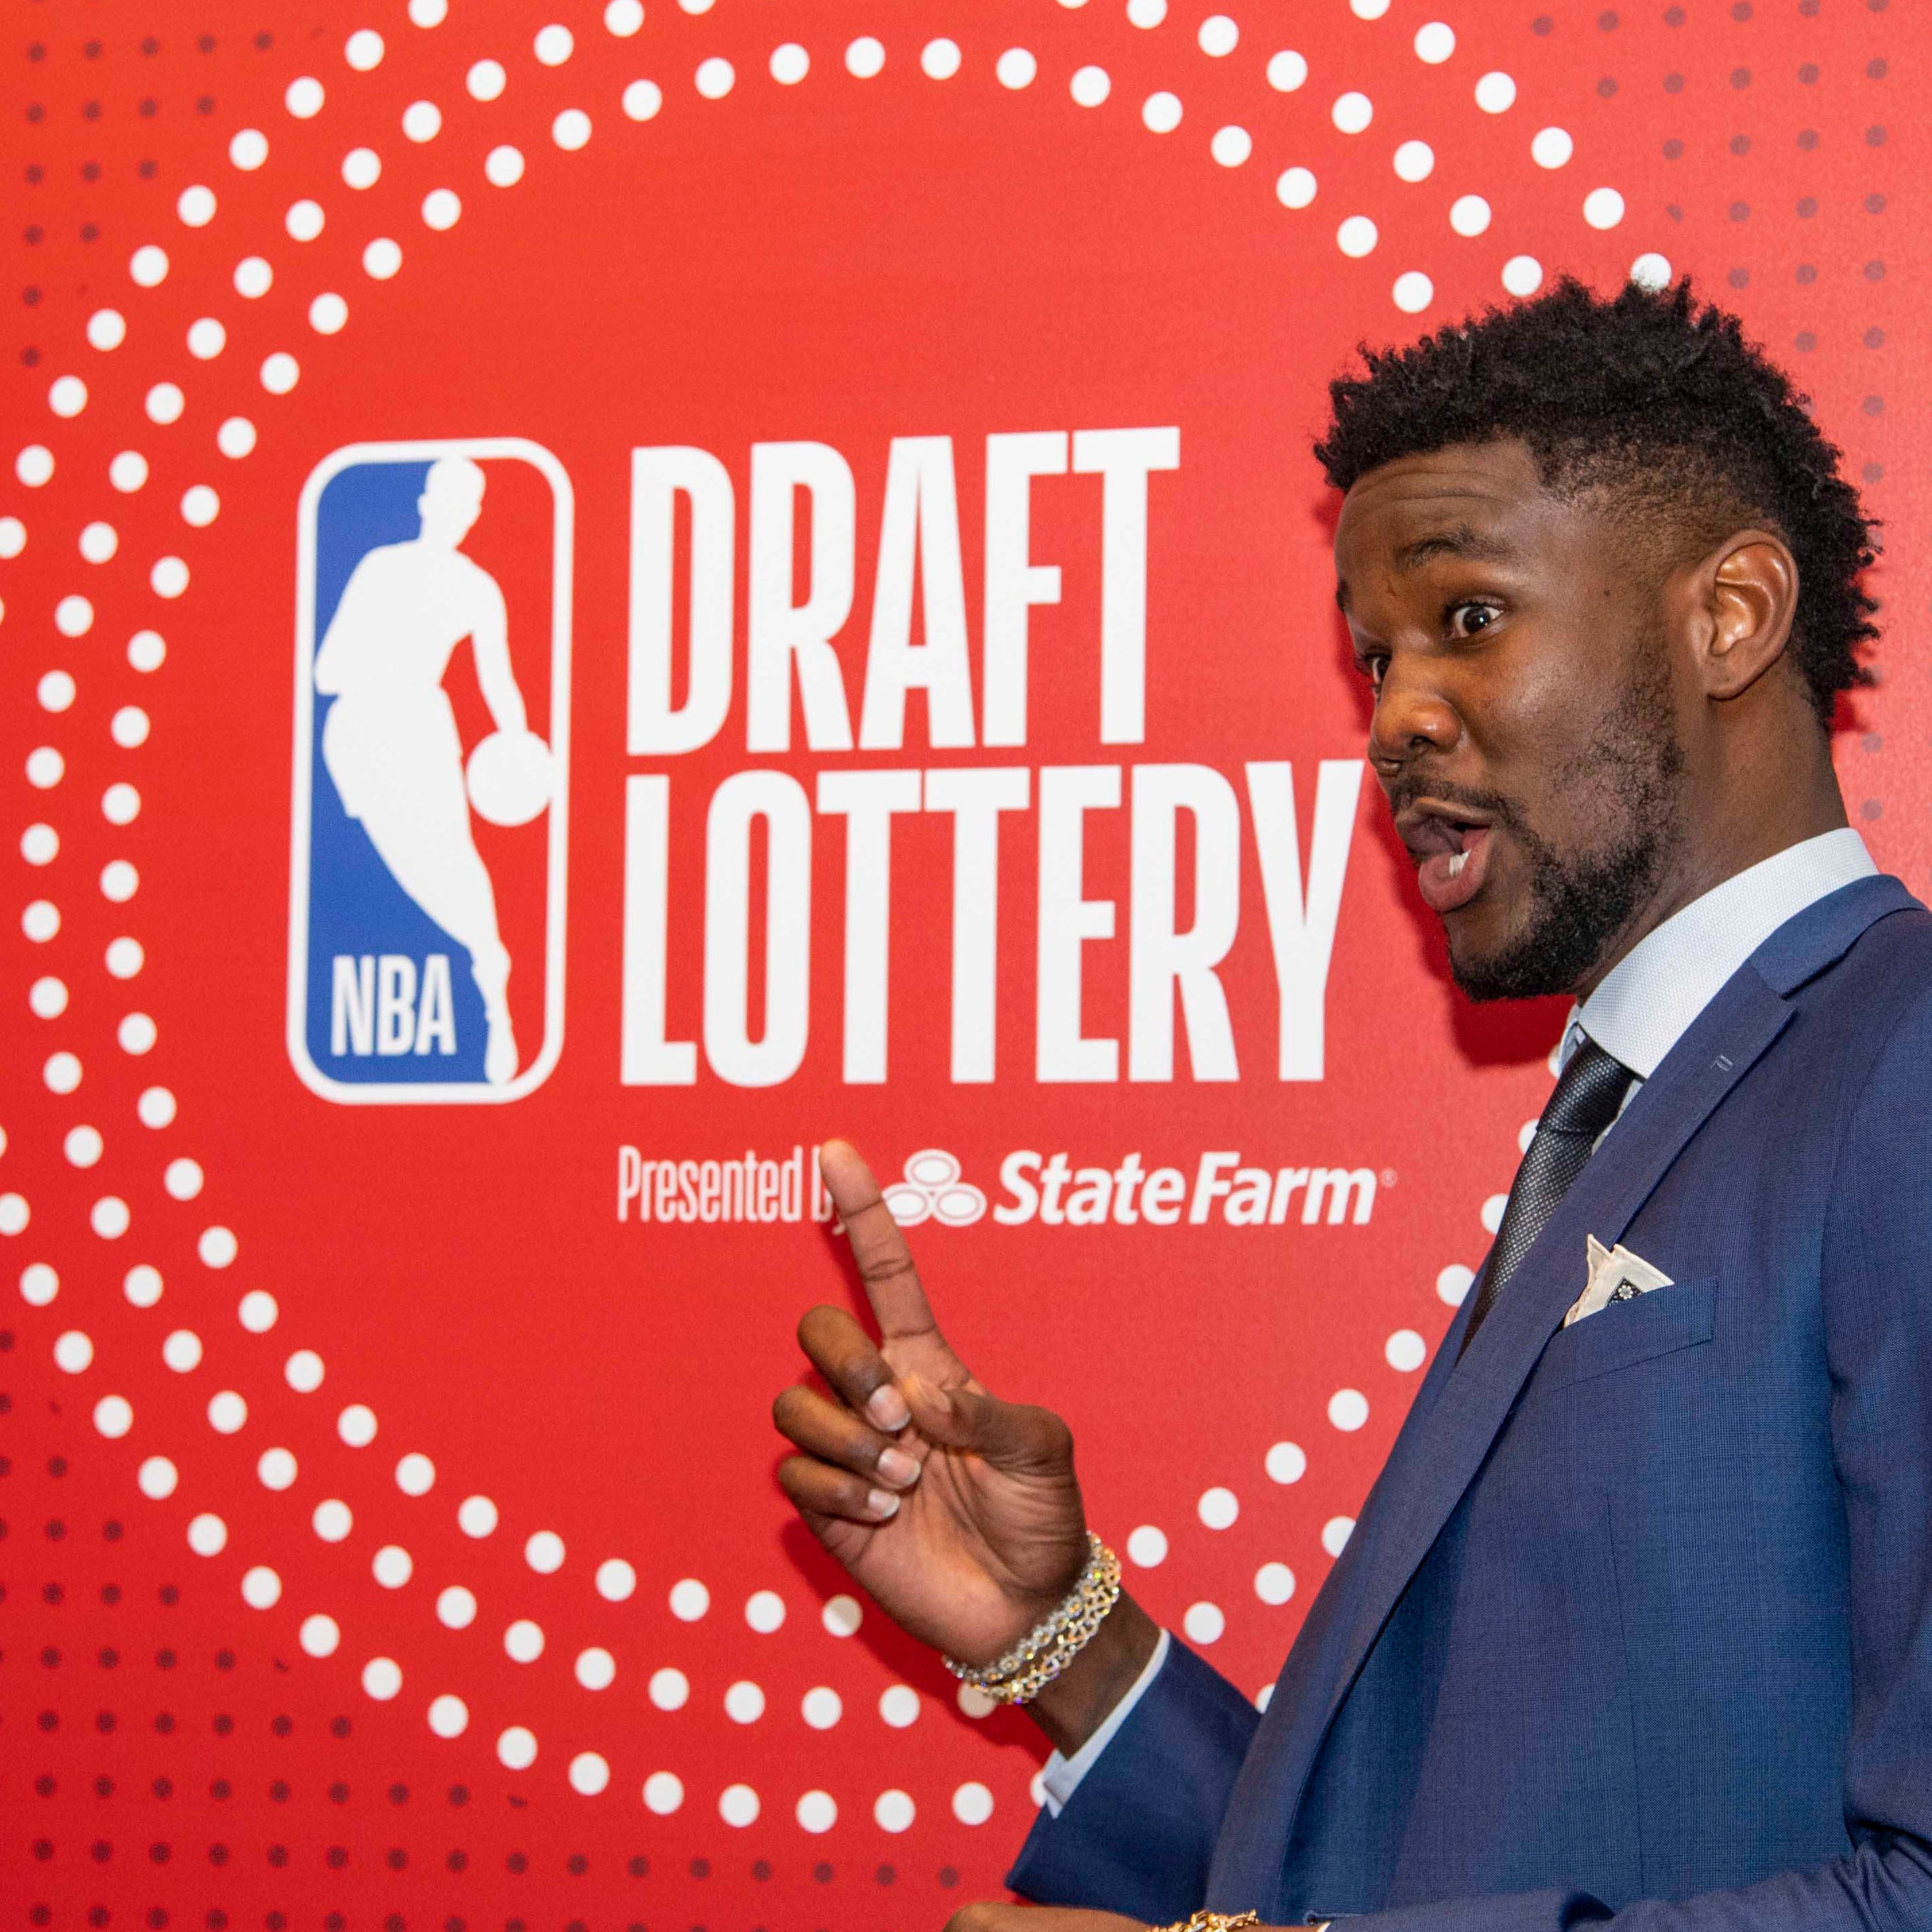 Falling to No. 6 in the draft isn't a worst-case scenario for Phoenix, even if it is close